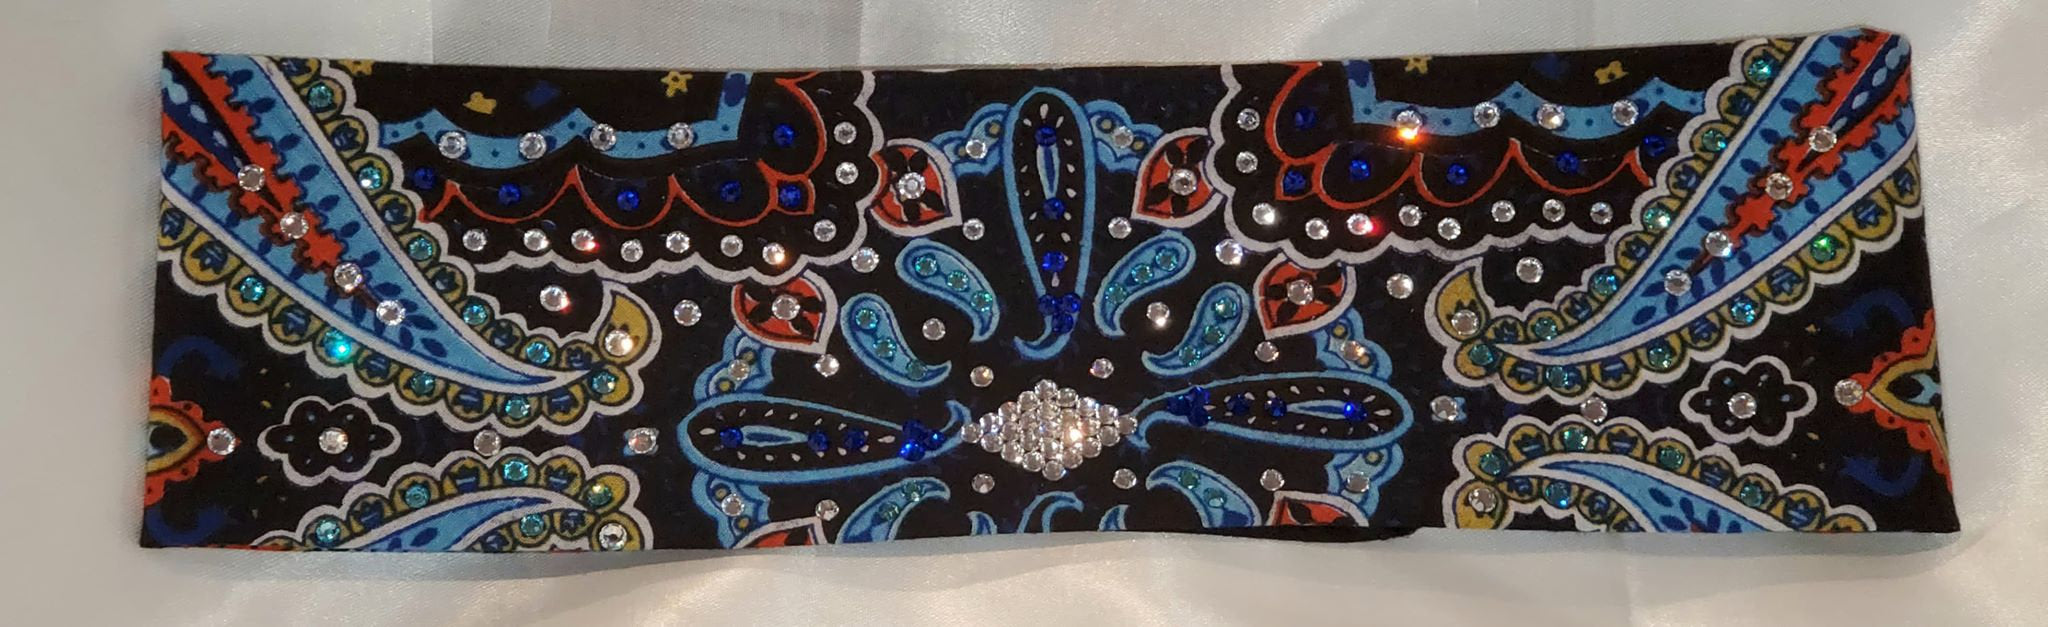 Blue Indian Design Bandana with Blue, Turquoise and Diamond Clear Swarovski Crystals (Sku1205)